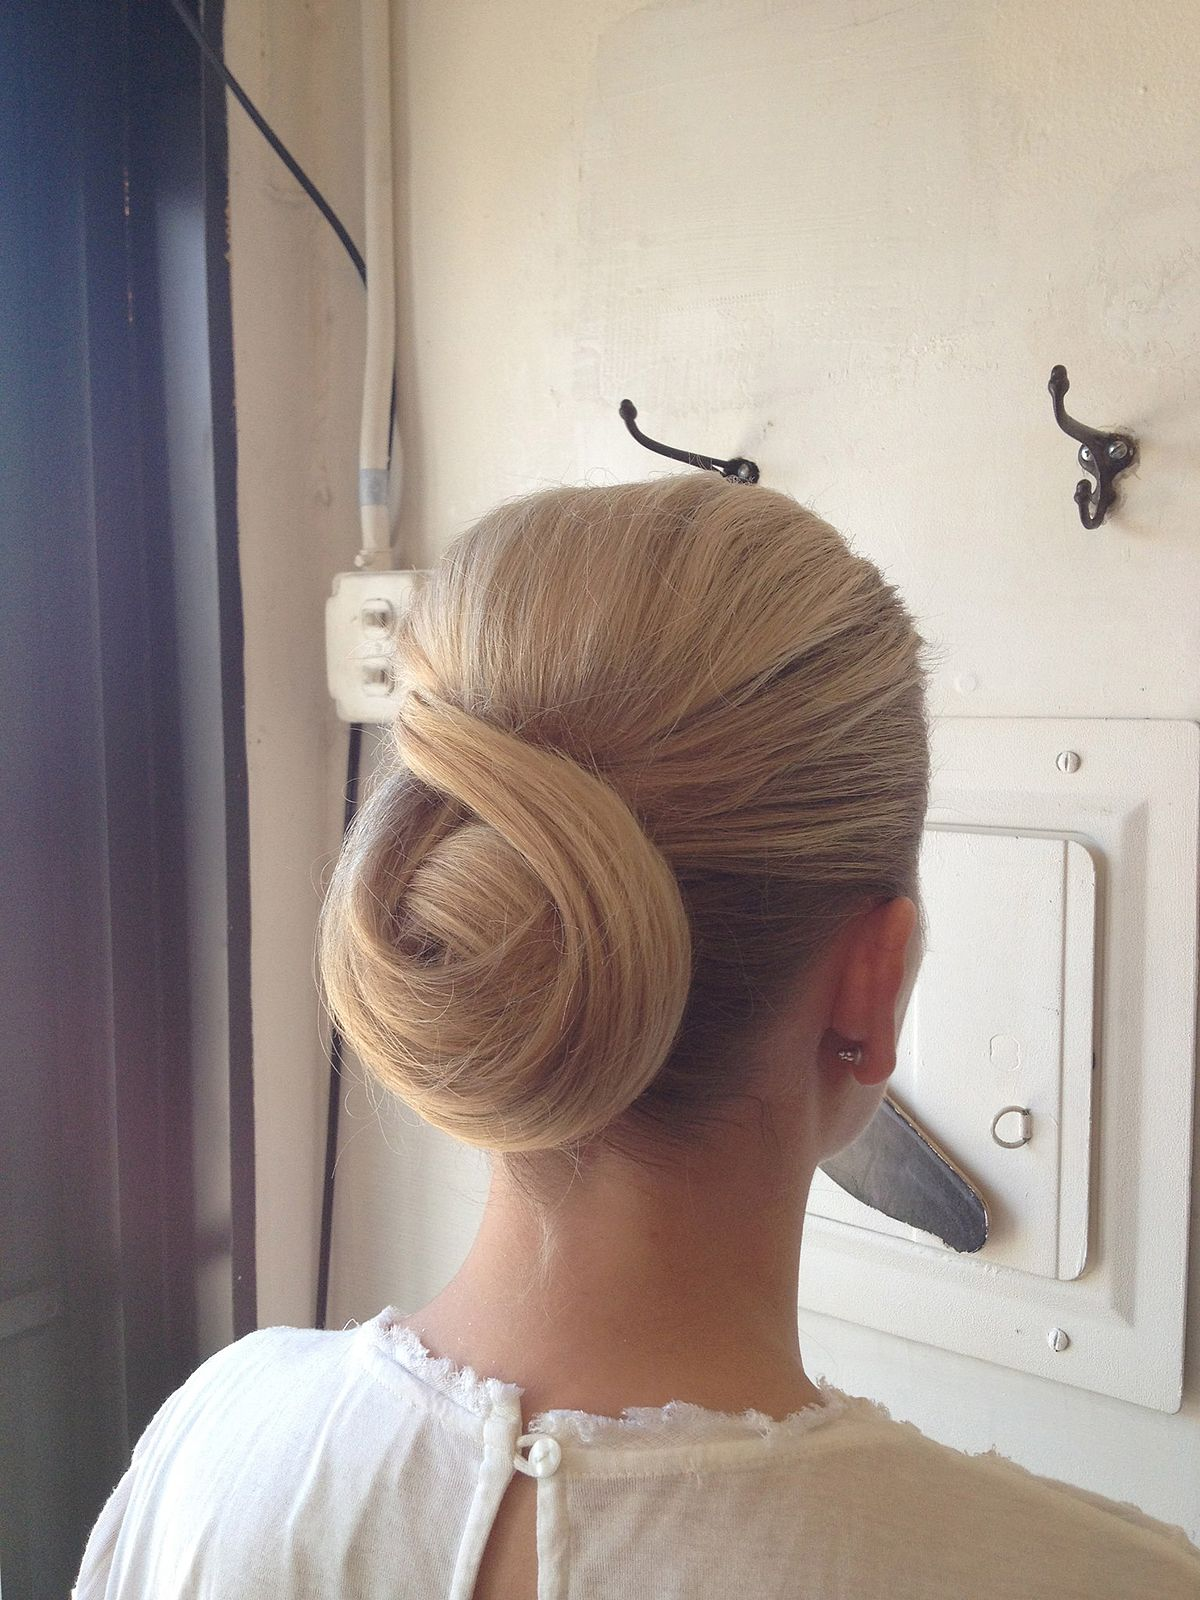 Chignon Hairstyle Wikipedia